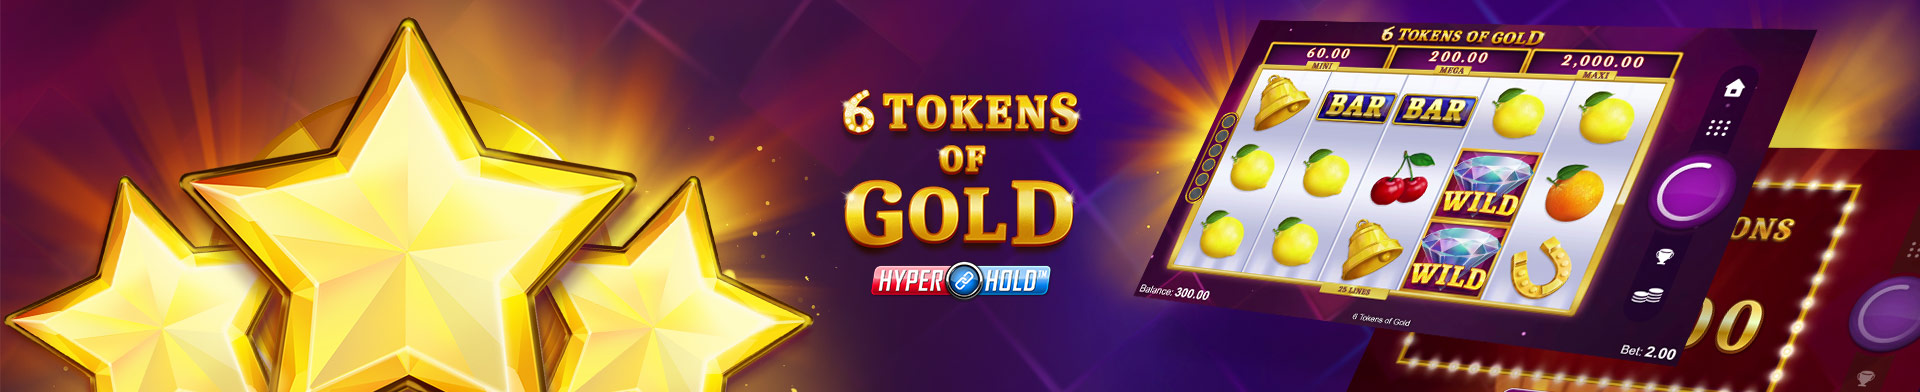 6 Tokens Of Gold Banner